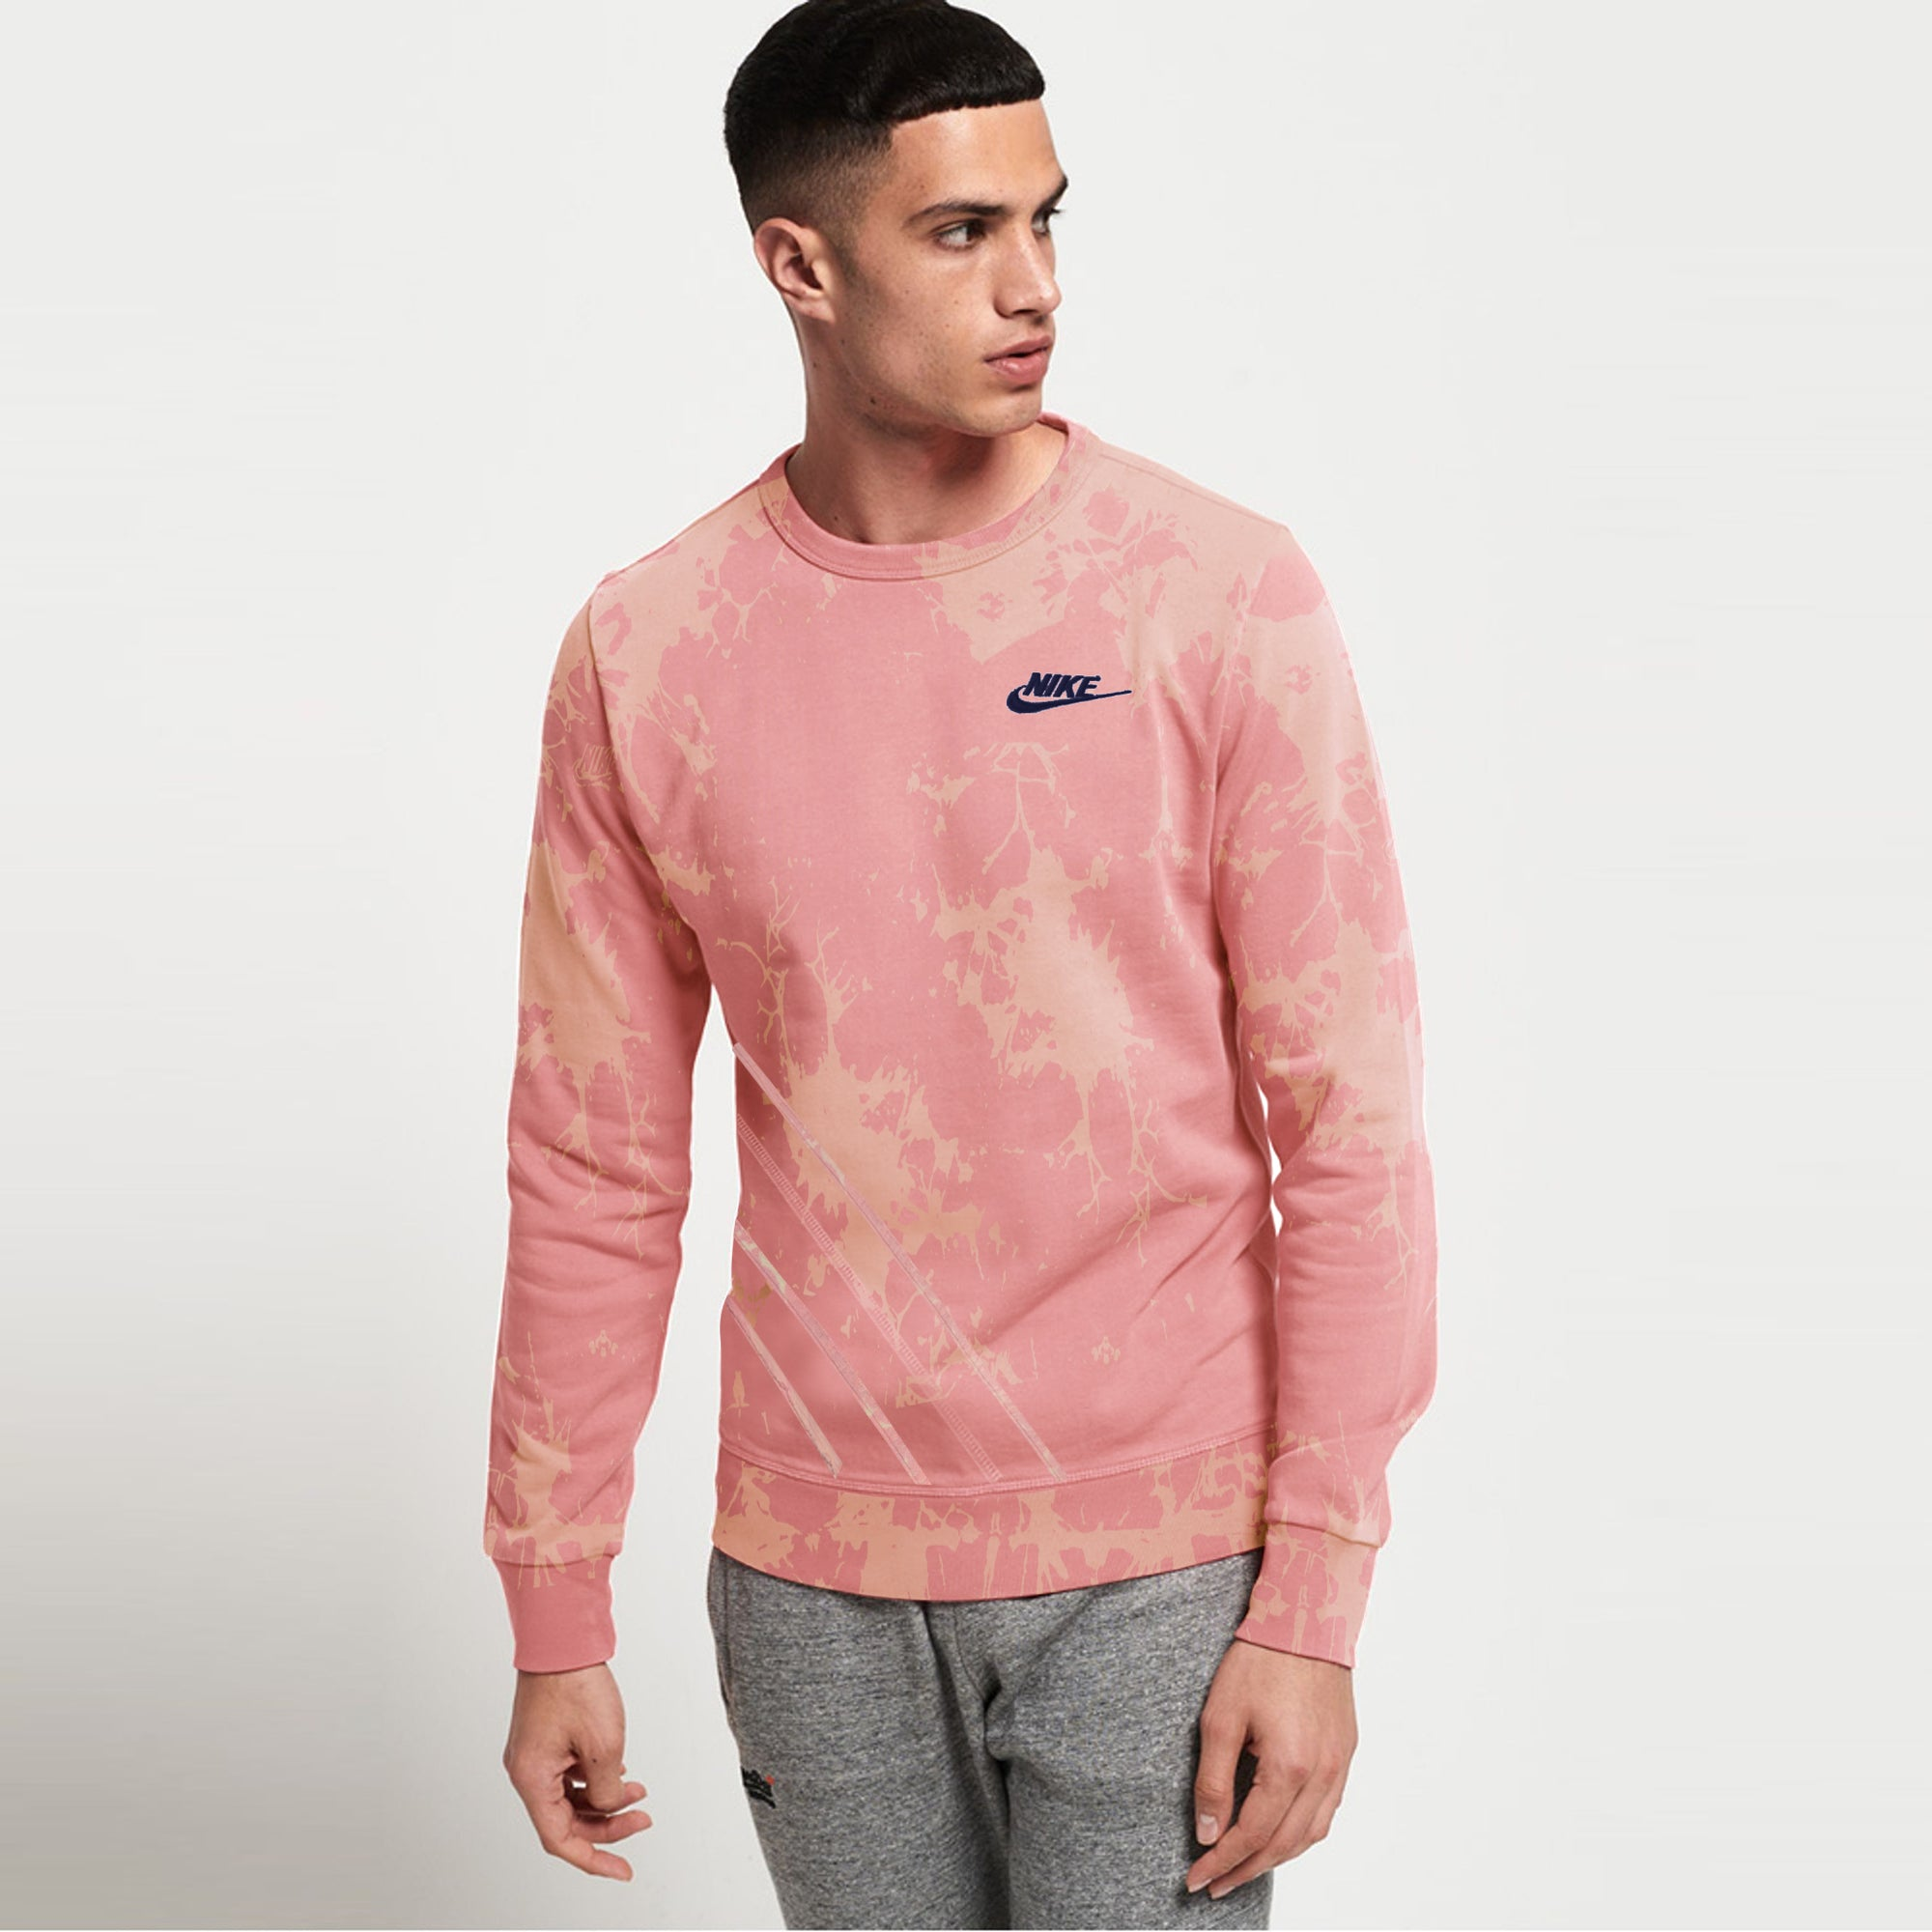 NK Crew Neck Terry Fleece Sweatshirt For Men-Light Pink With Faded-SP1331